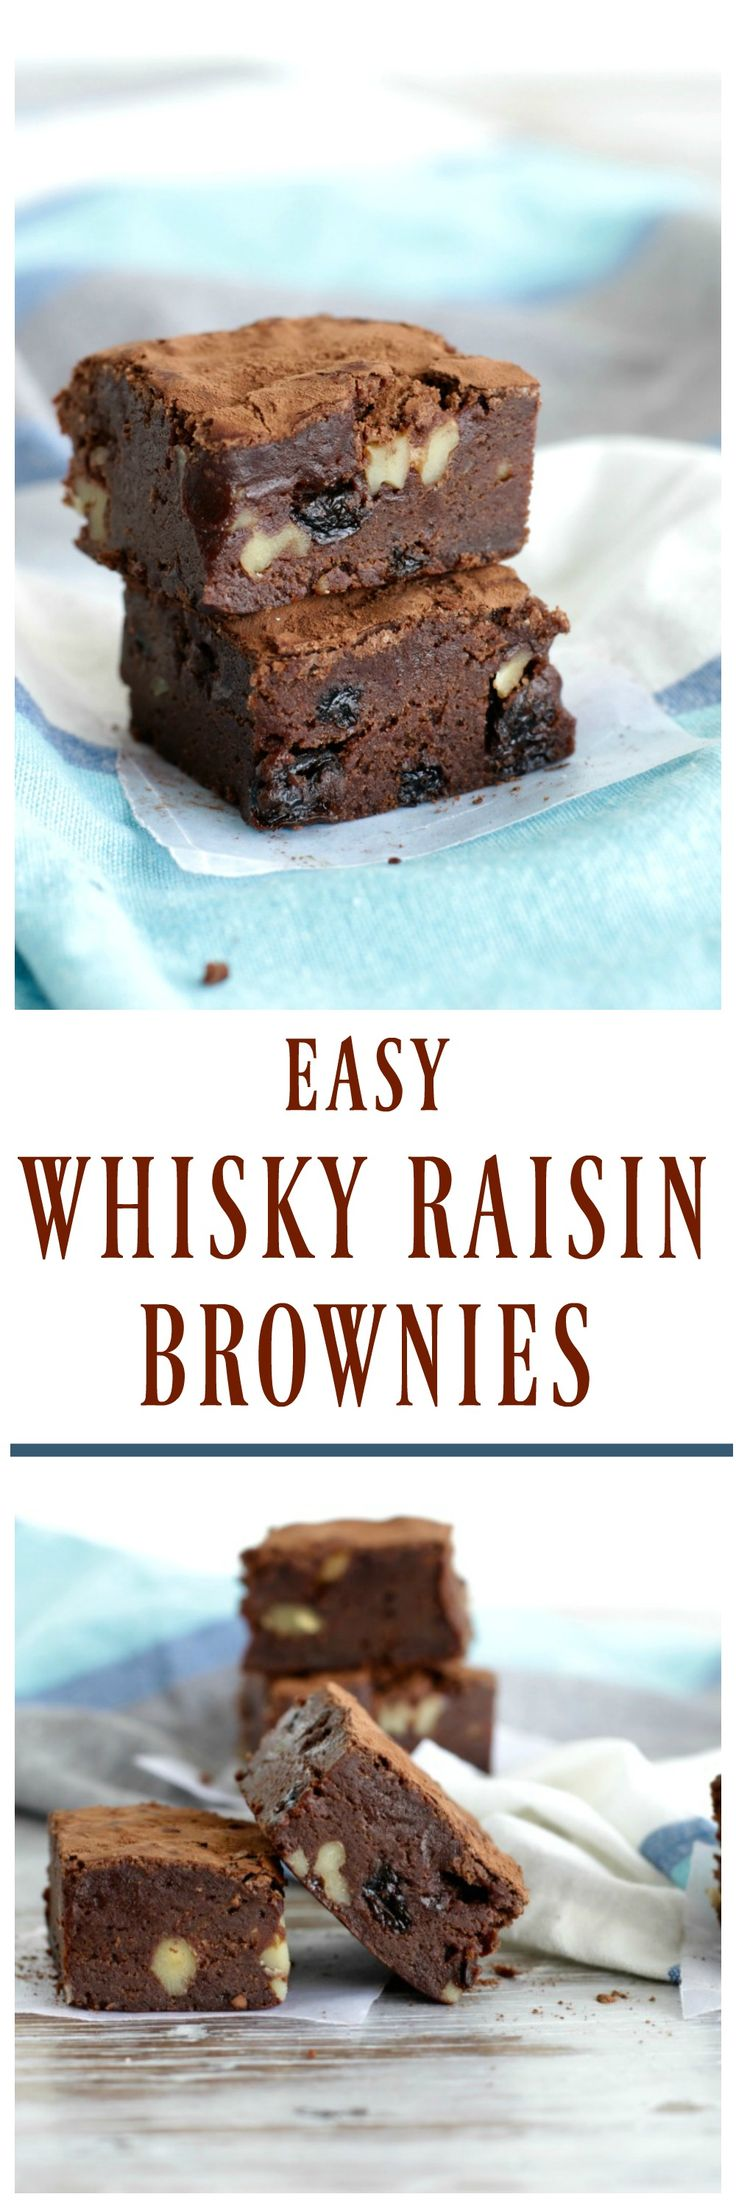 WHISKY RAISIN WALNUT BROWNIES, gooey, fudgy and full of whisky soaked raisins for a flavour experience that will surprise you in the best way.